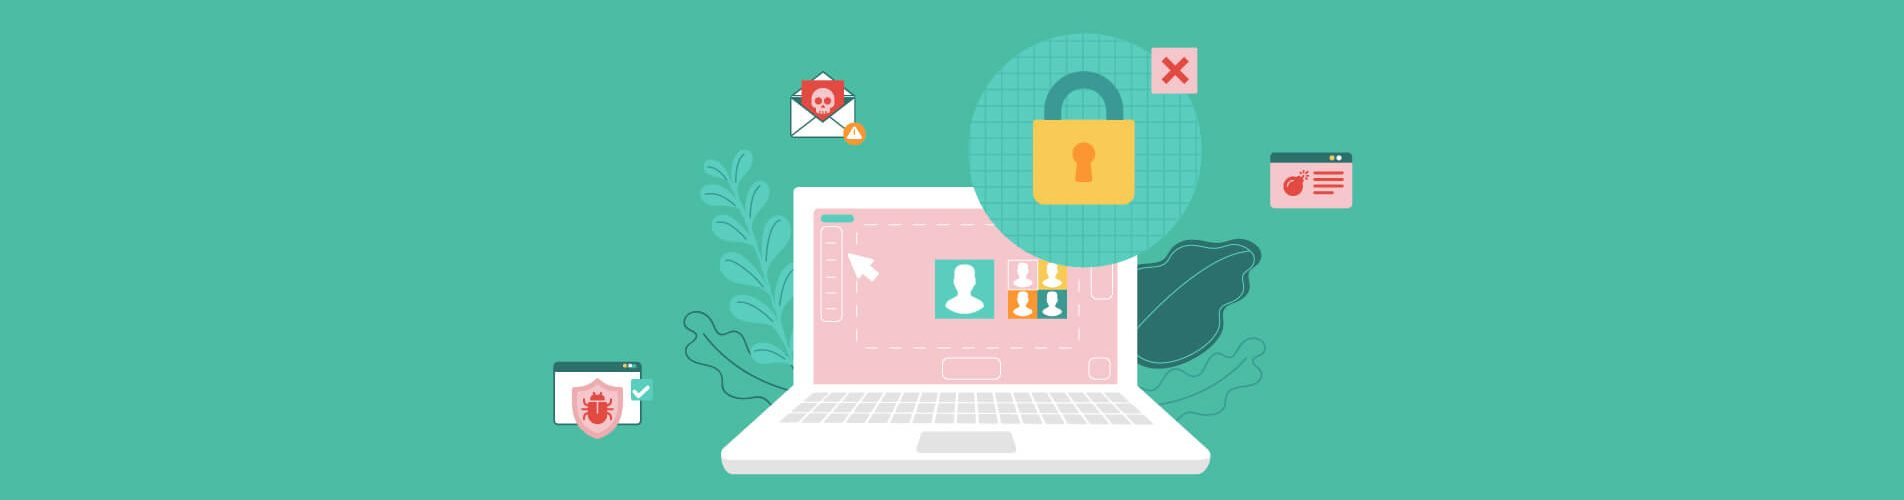 Online safety requirements for the virtual classroom